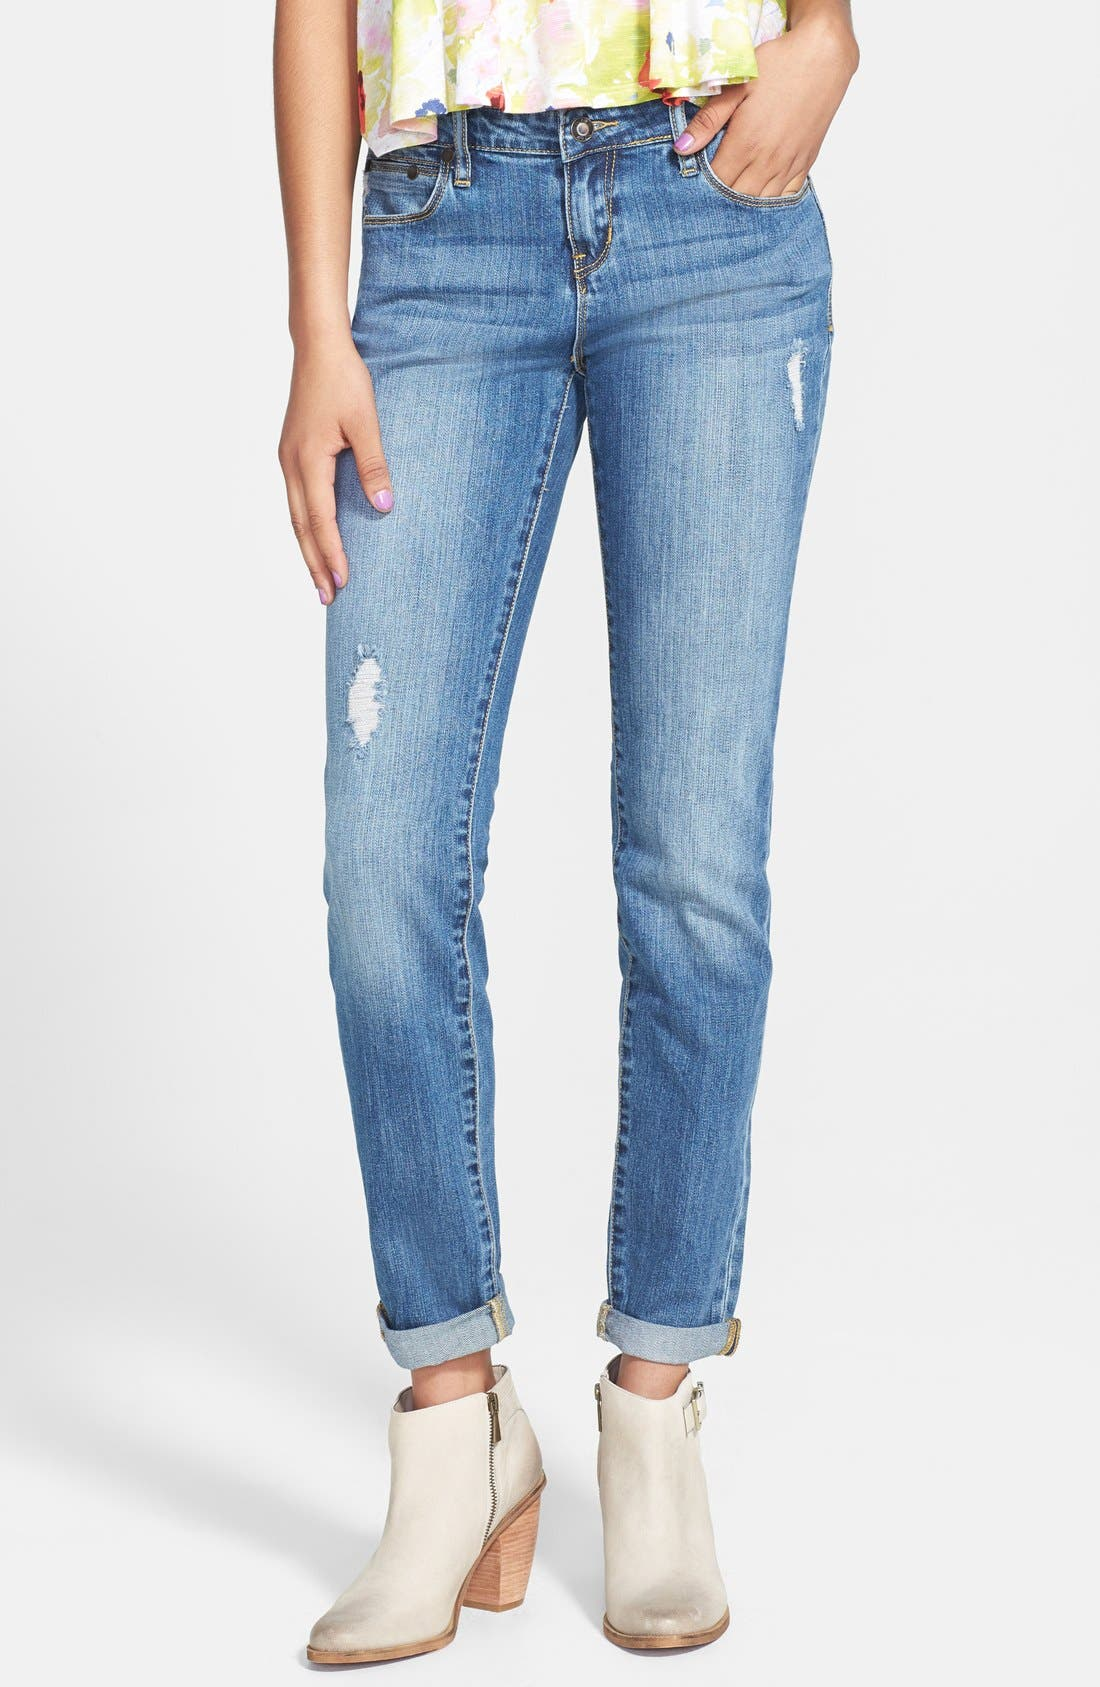 Alternate Image 1 Selected - THIS CITY Destroyed Skinny Boyfriend Jeans (Medium) (Juniors)